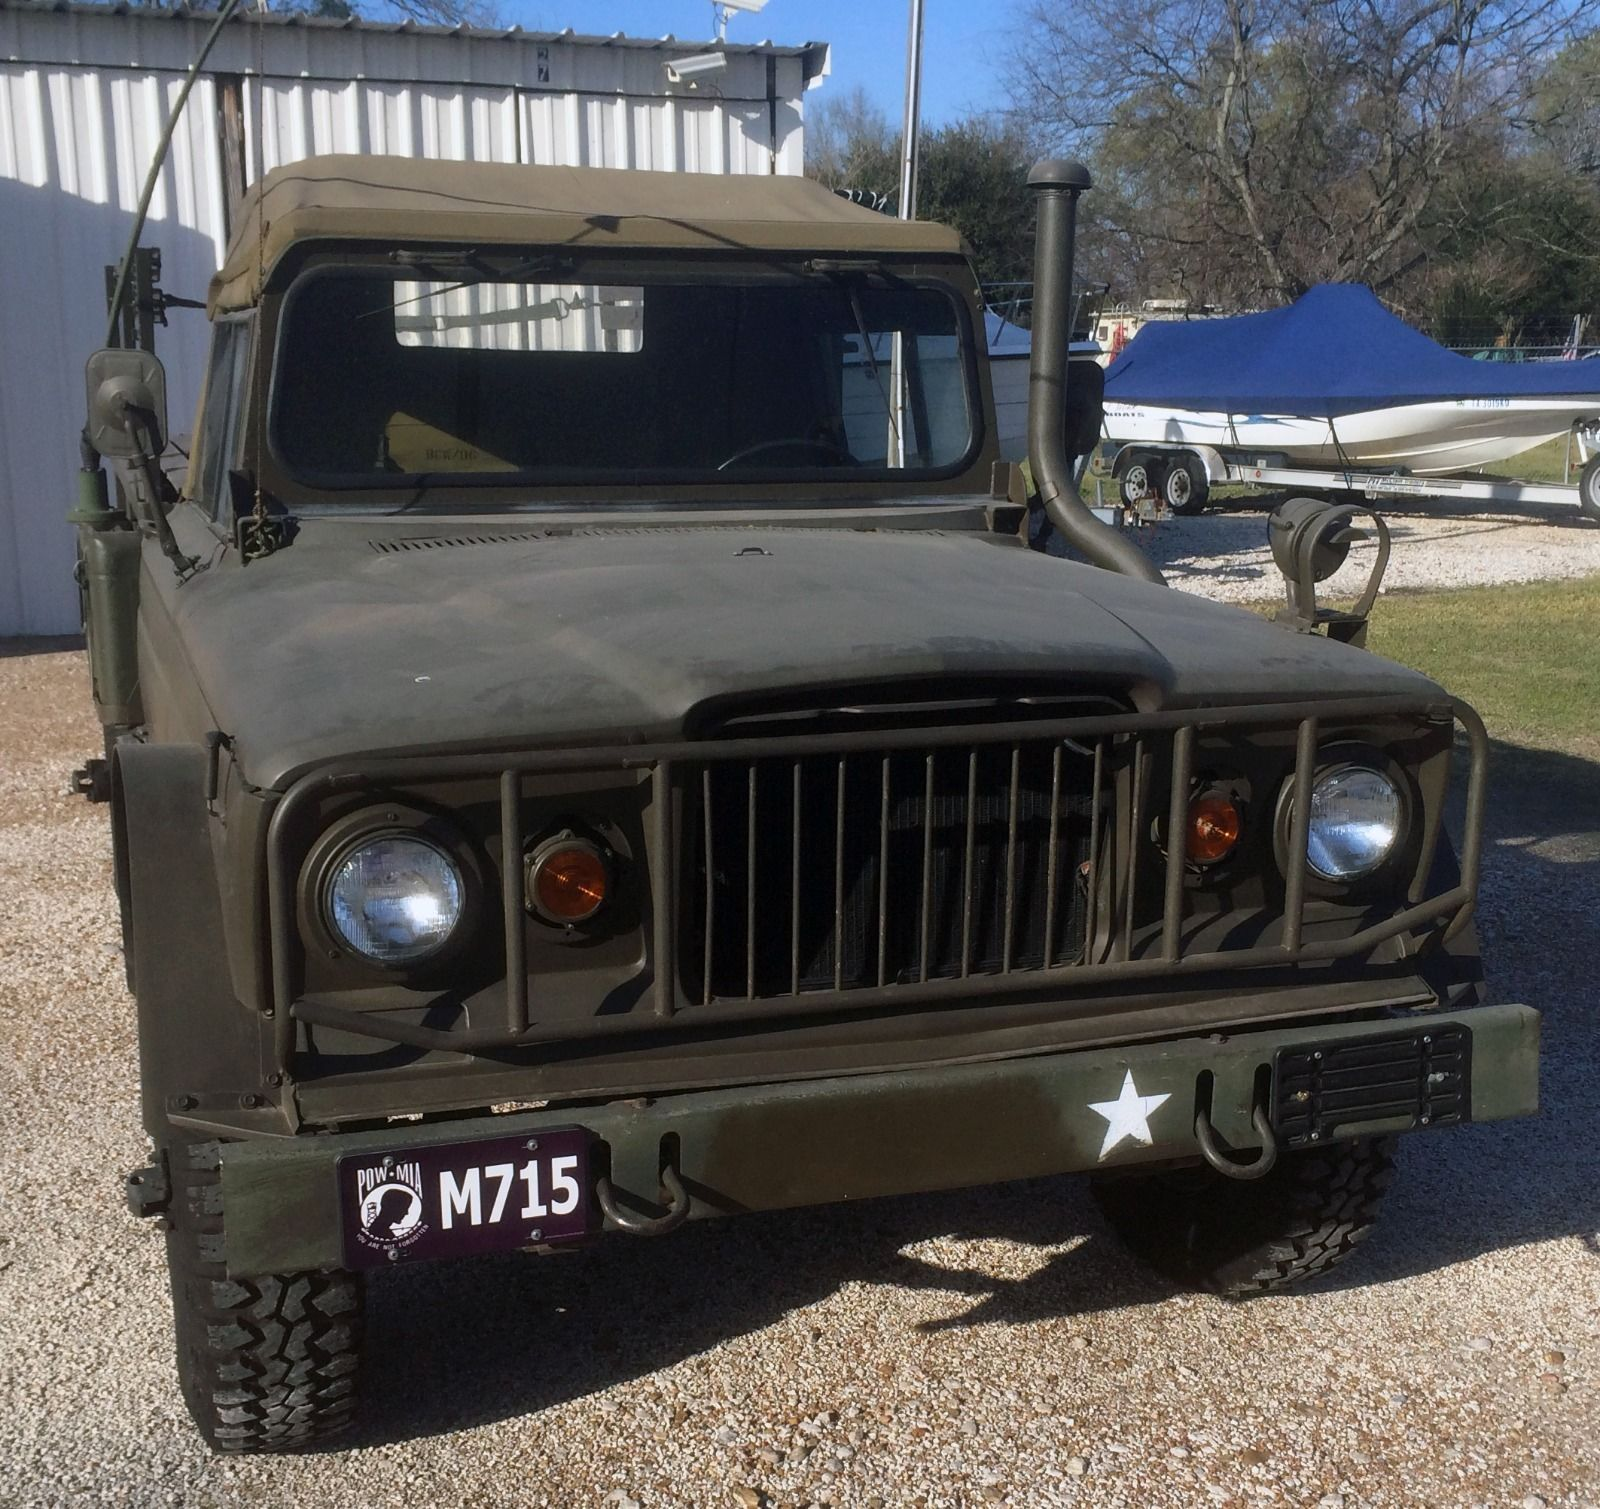 1967 Kaiser Jeep M715 Military vehicles for sale